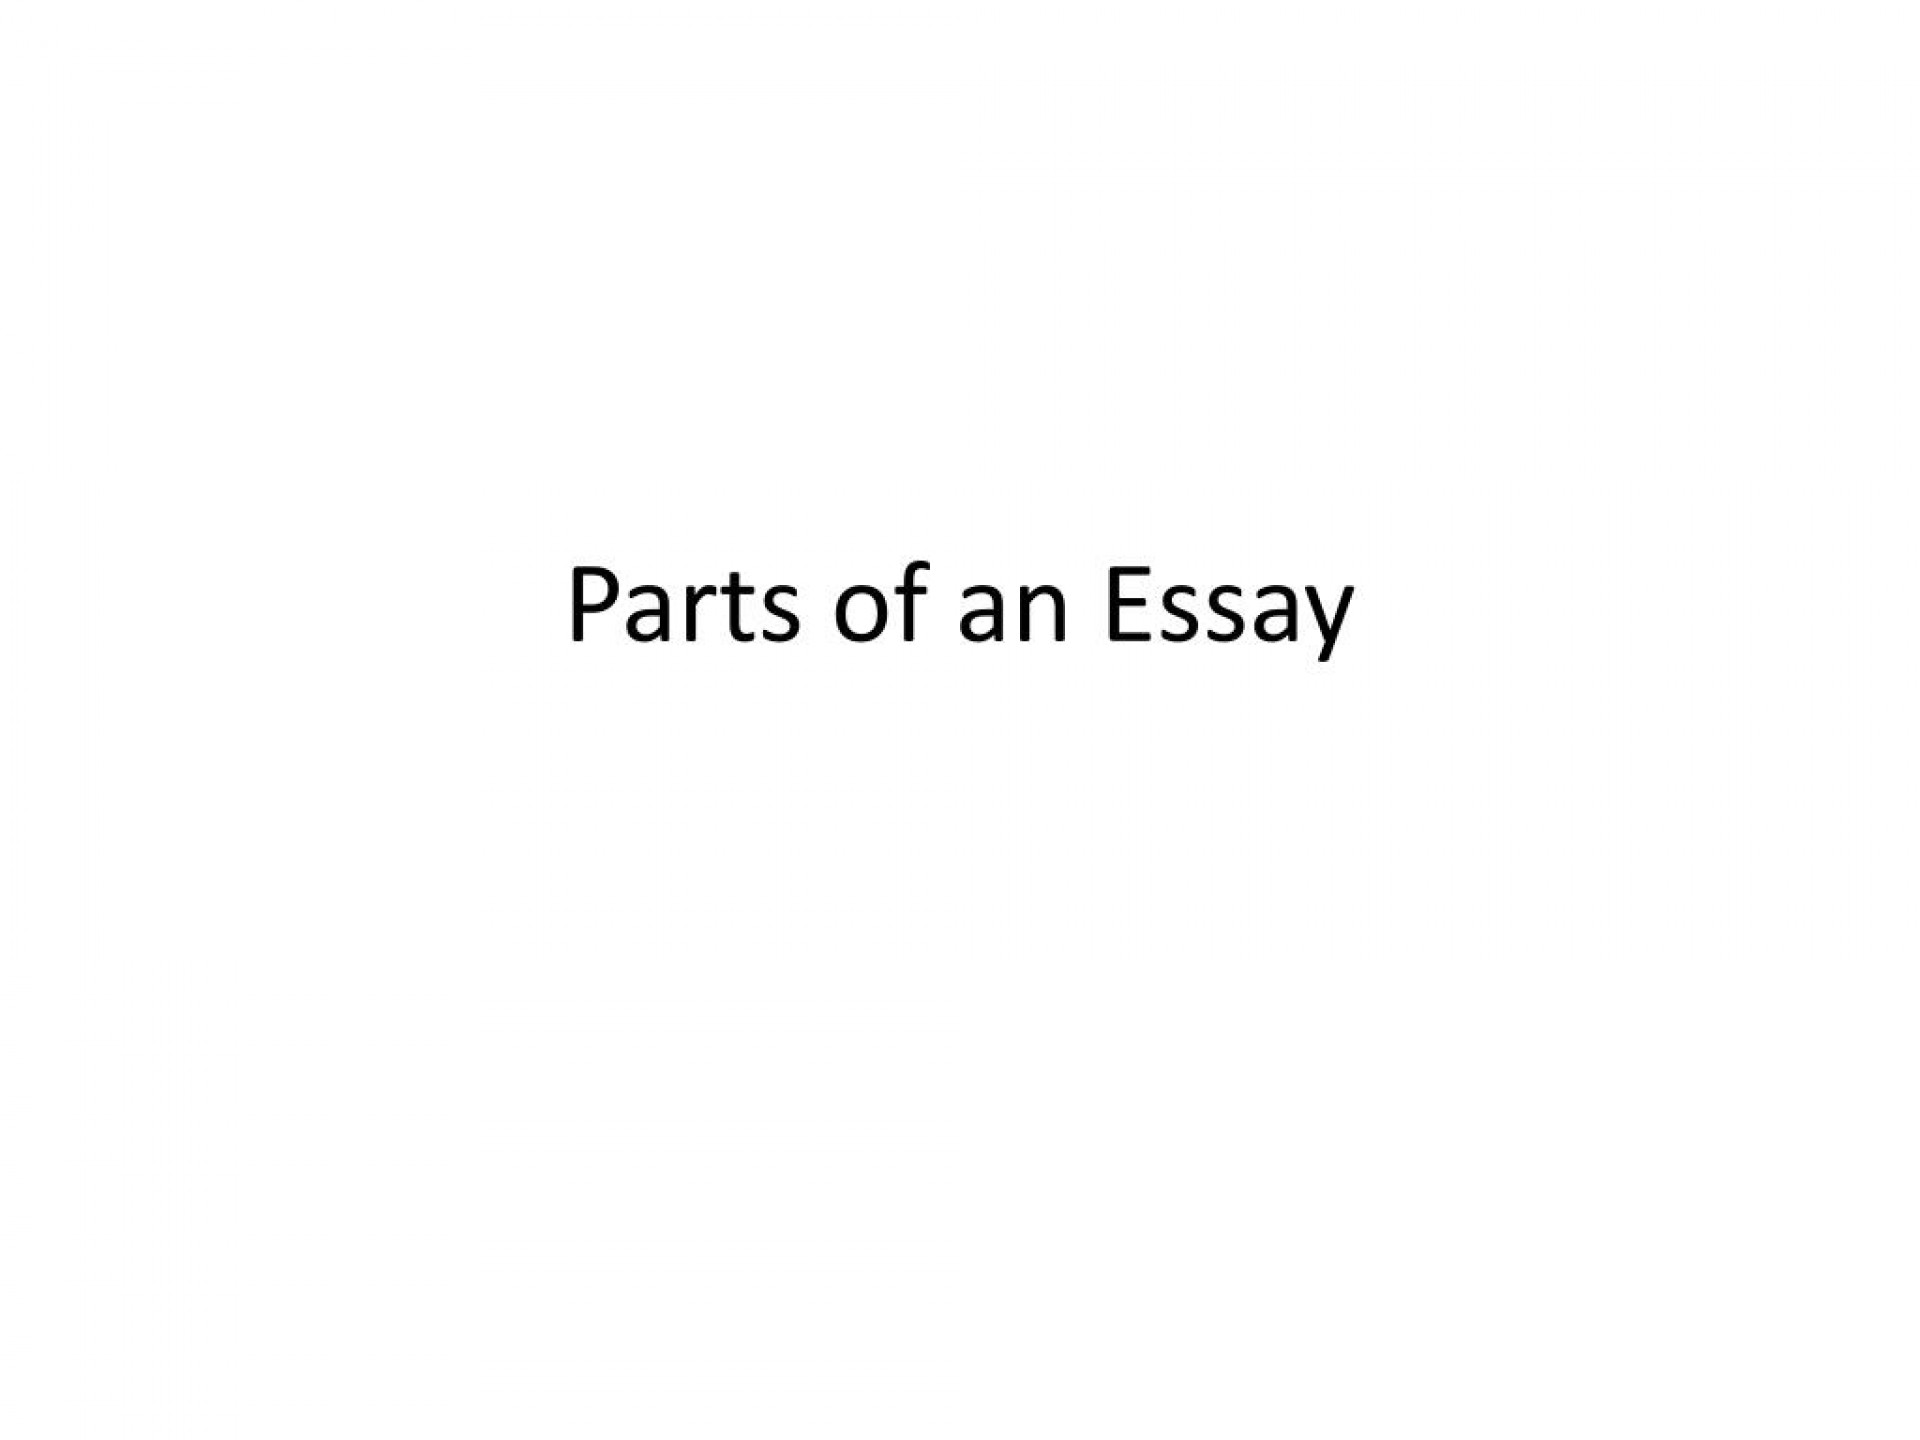 015 What Are The Parts Of An Essay L Striking Three Introduction Evaluative And Their Meaning 1920